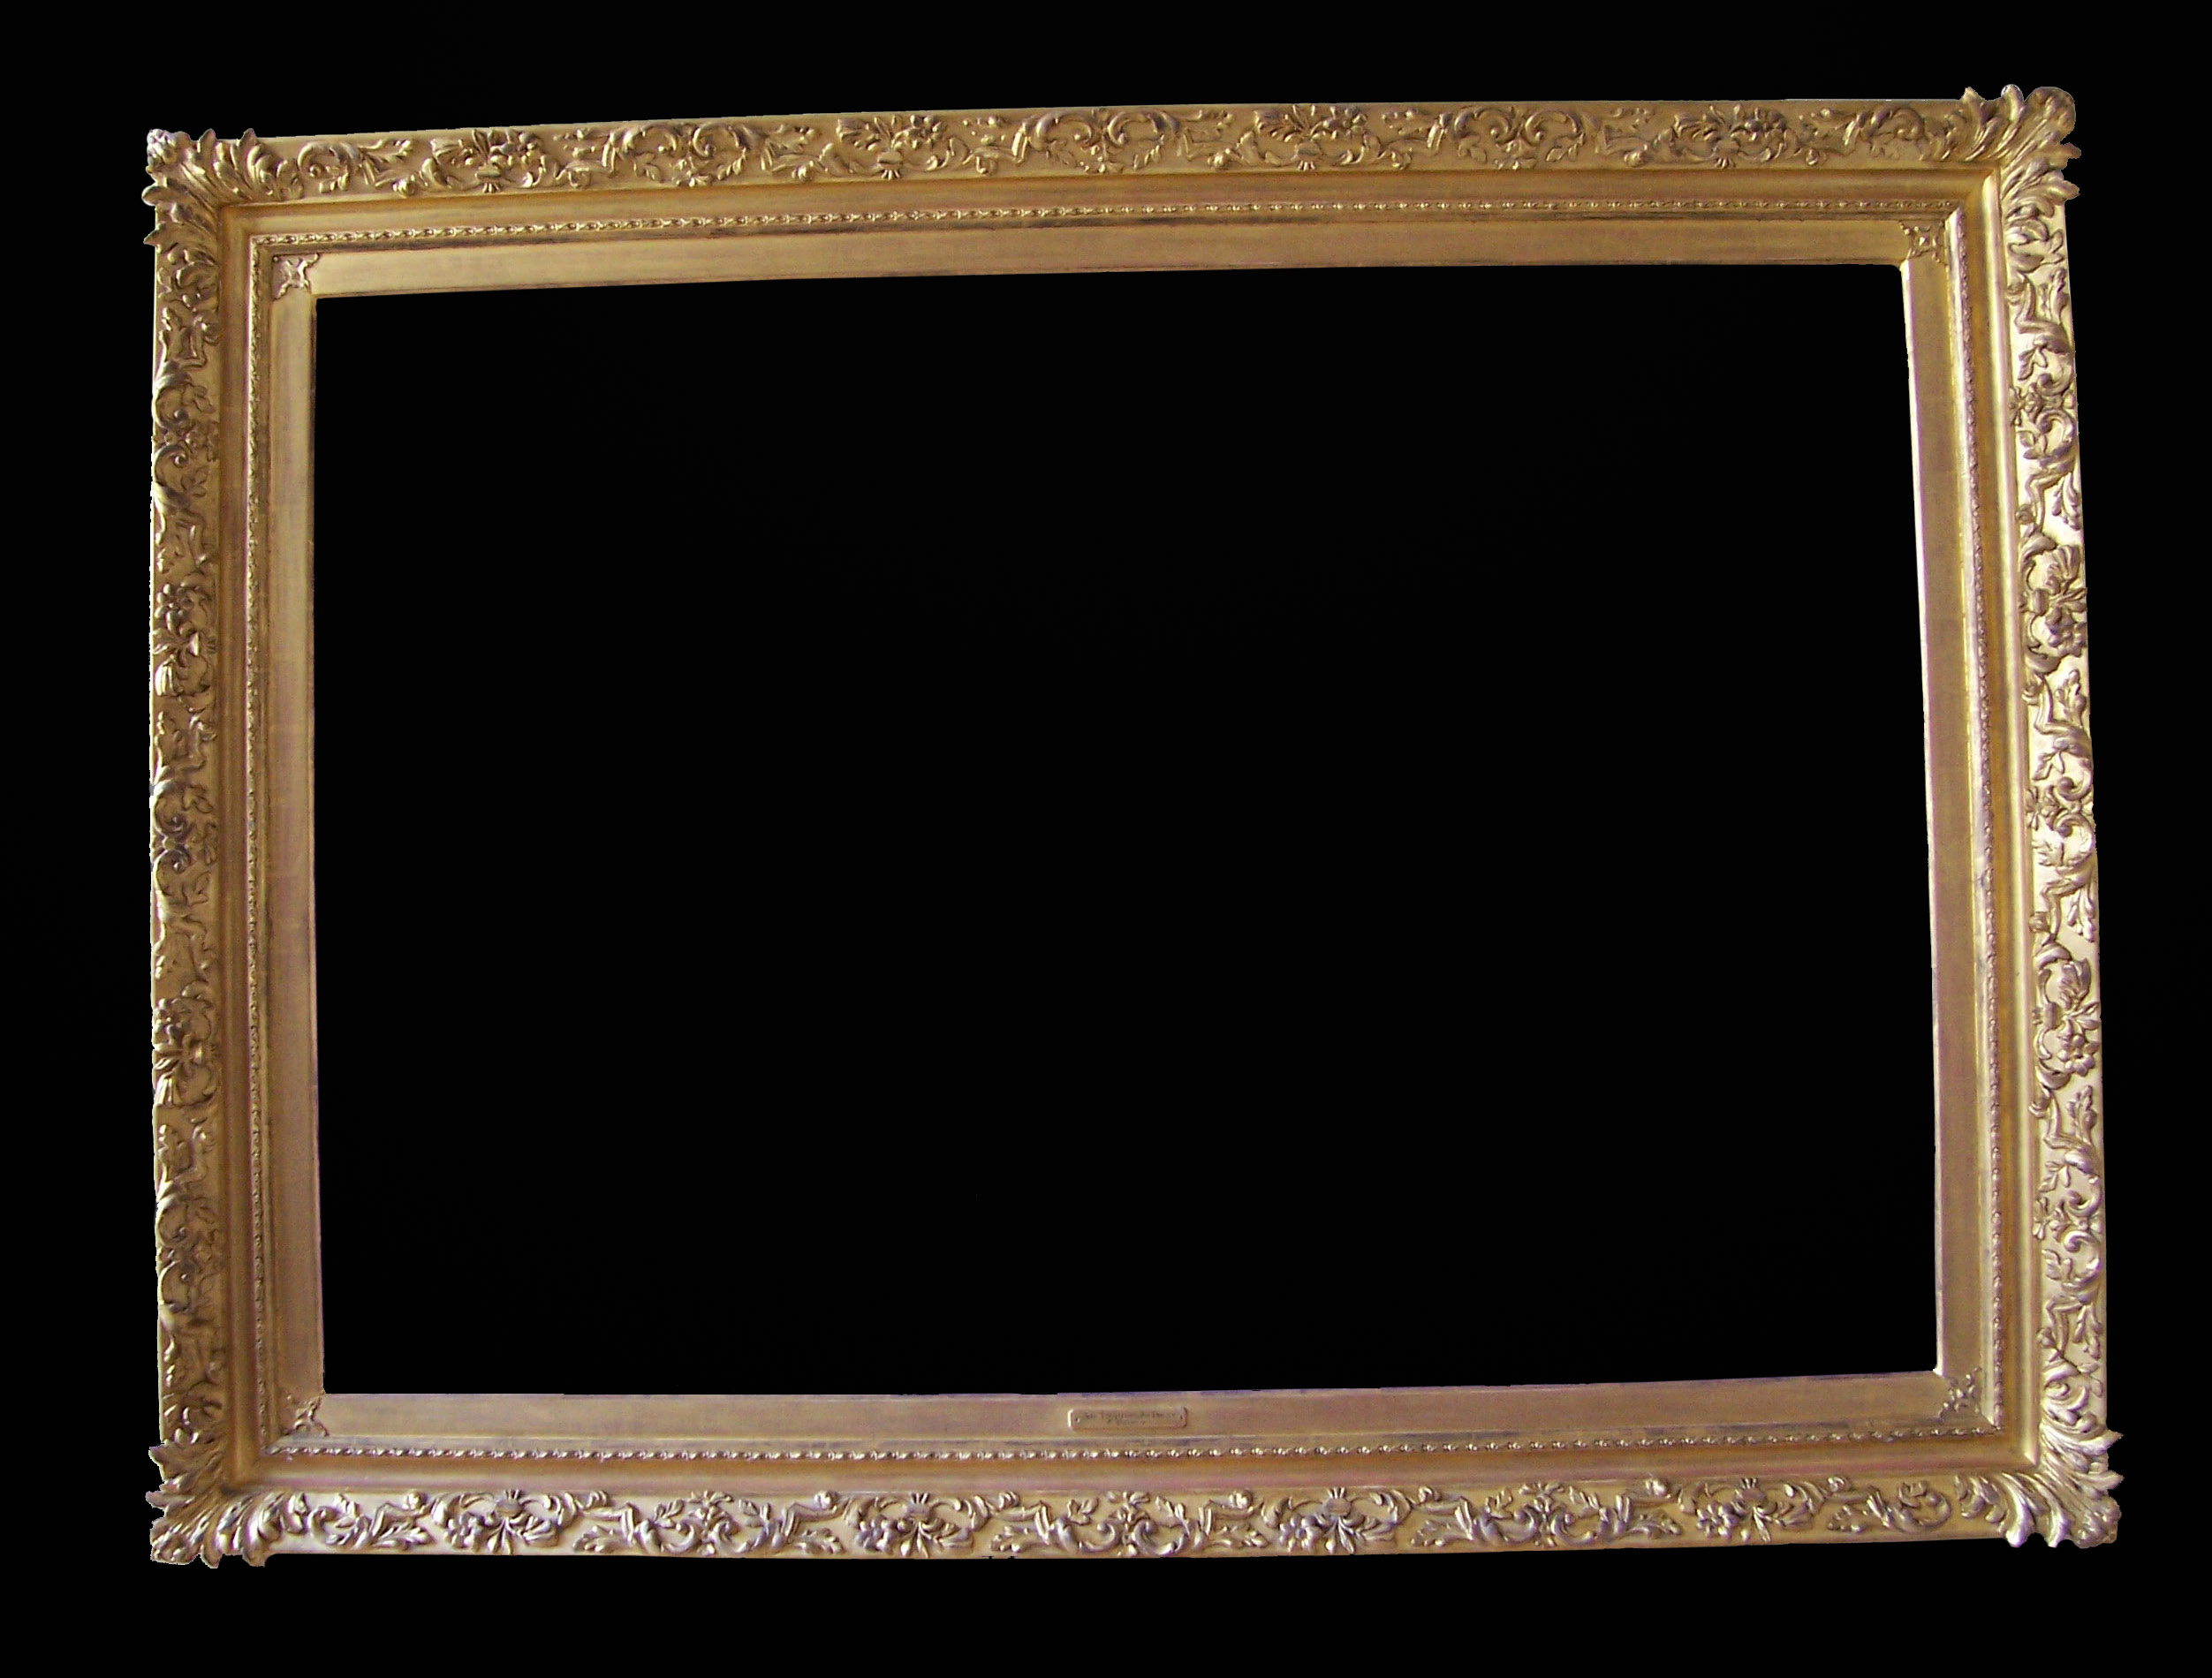 Carden picture frame. Made by Ruth Tappin